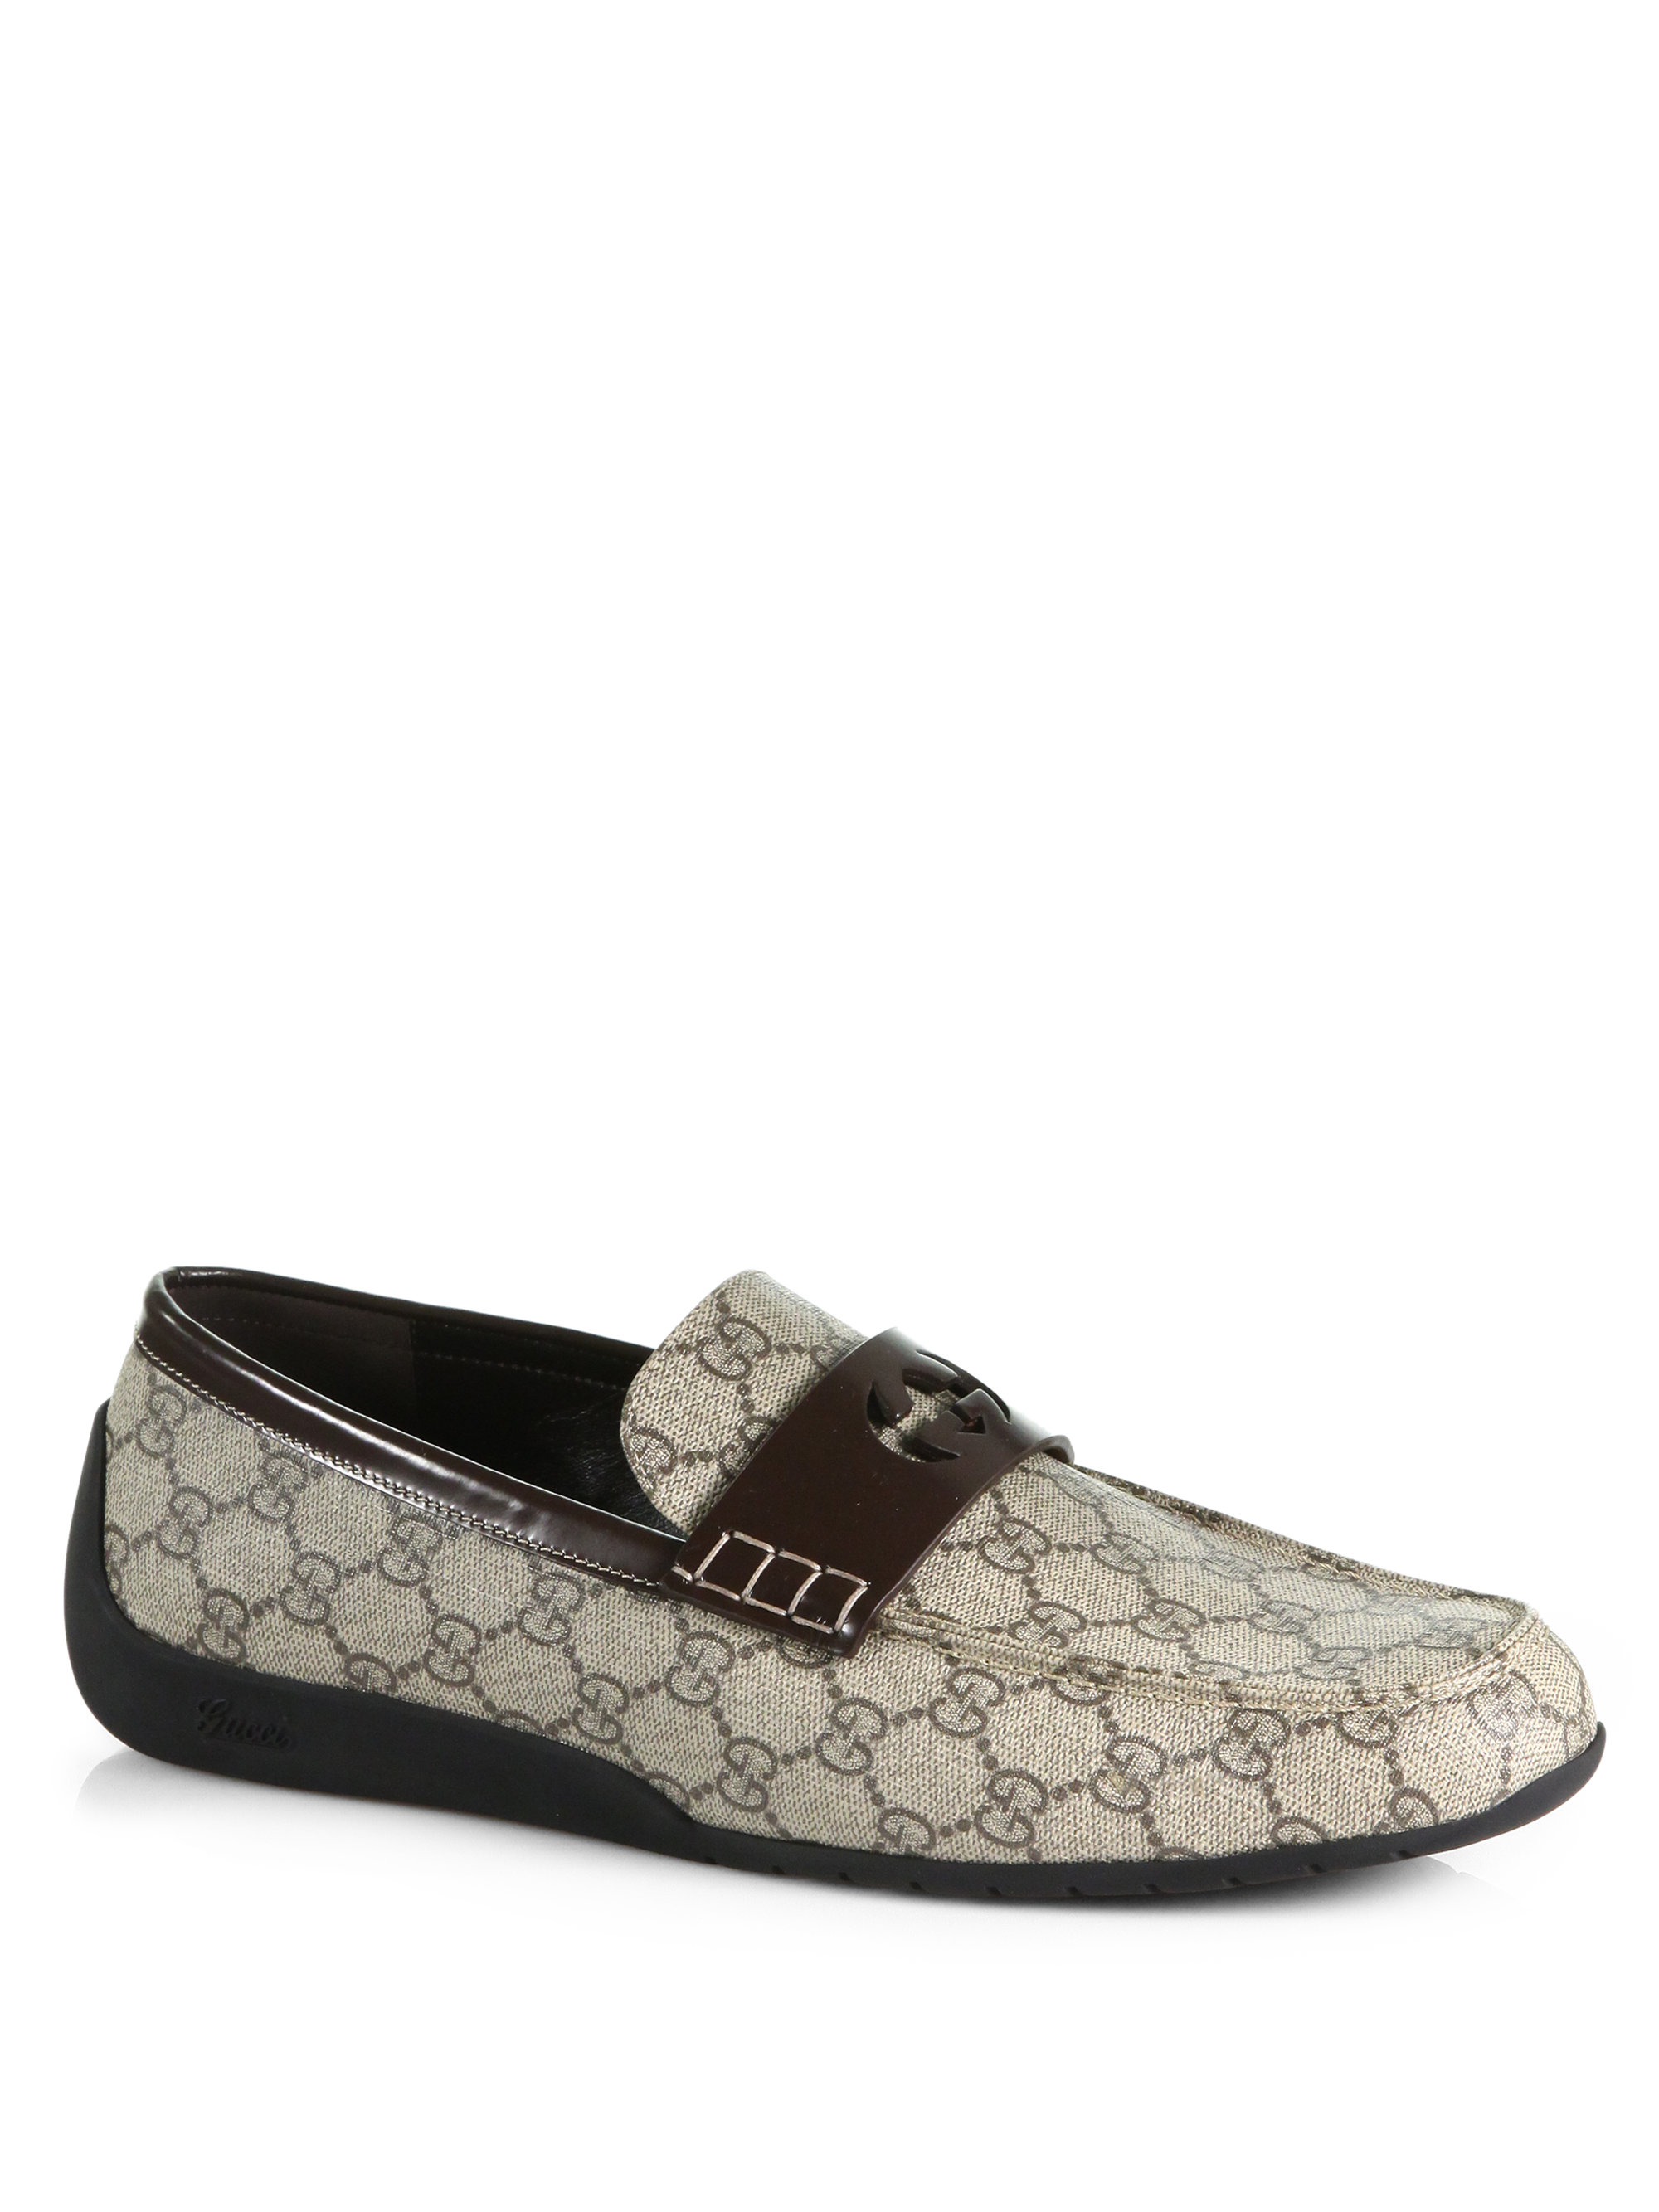 6f7fd477f8a Lyst - Gucci Gg Loafers in Gray for Men